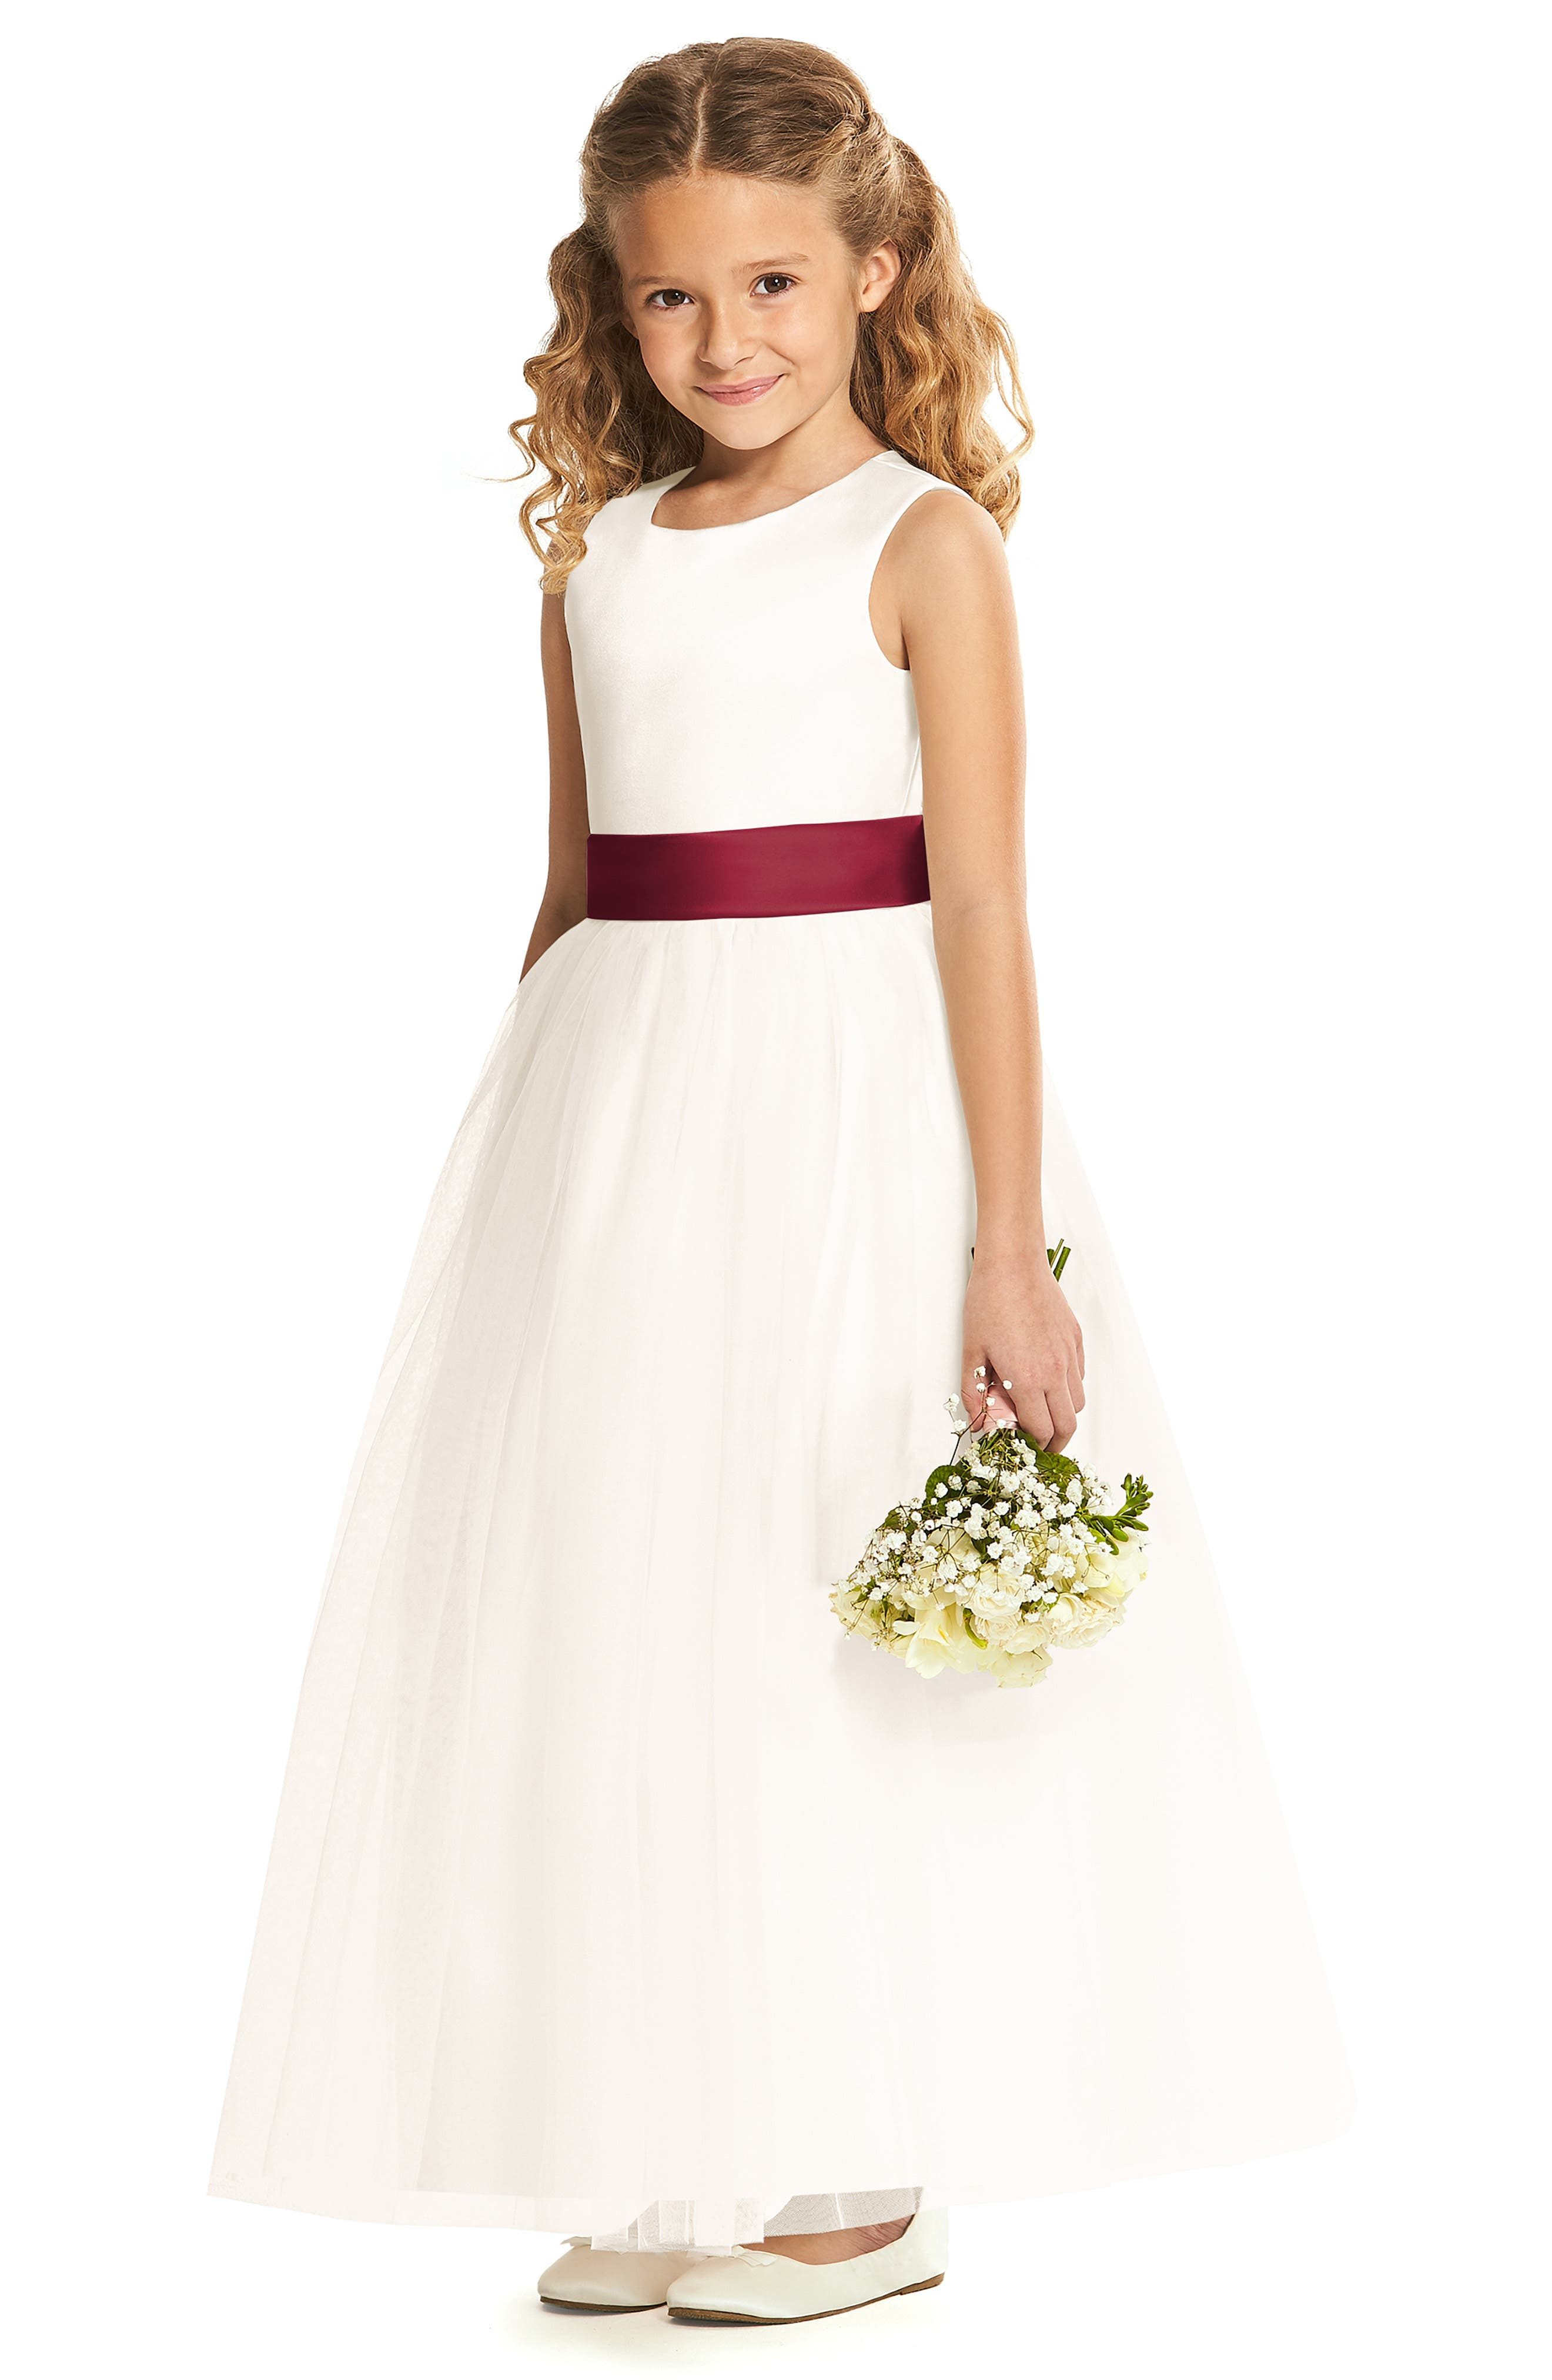 DESSY COLLECTION Flower Girl Dress, Main, color, IVORY WITH BURGUNDY SASH